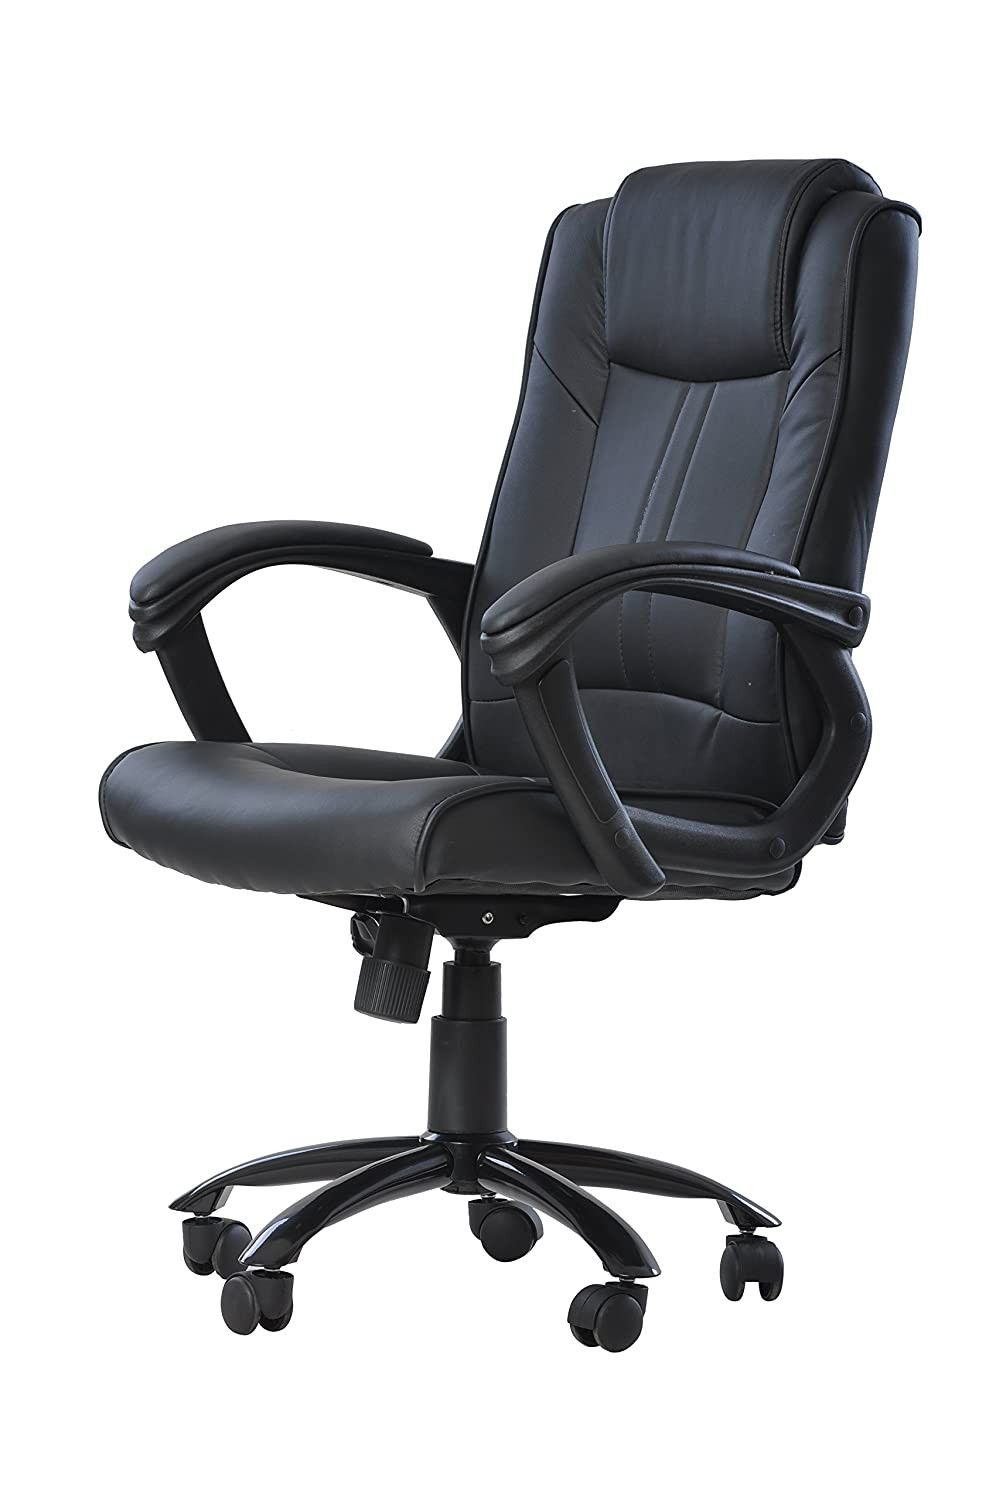 Cheap Office Chairs 2021